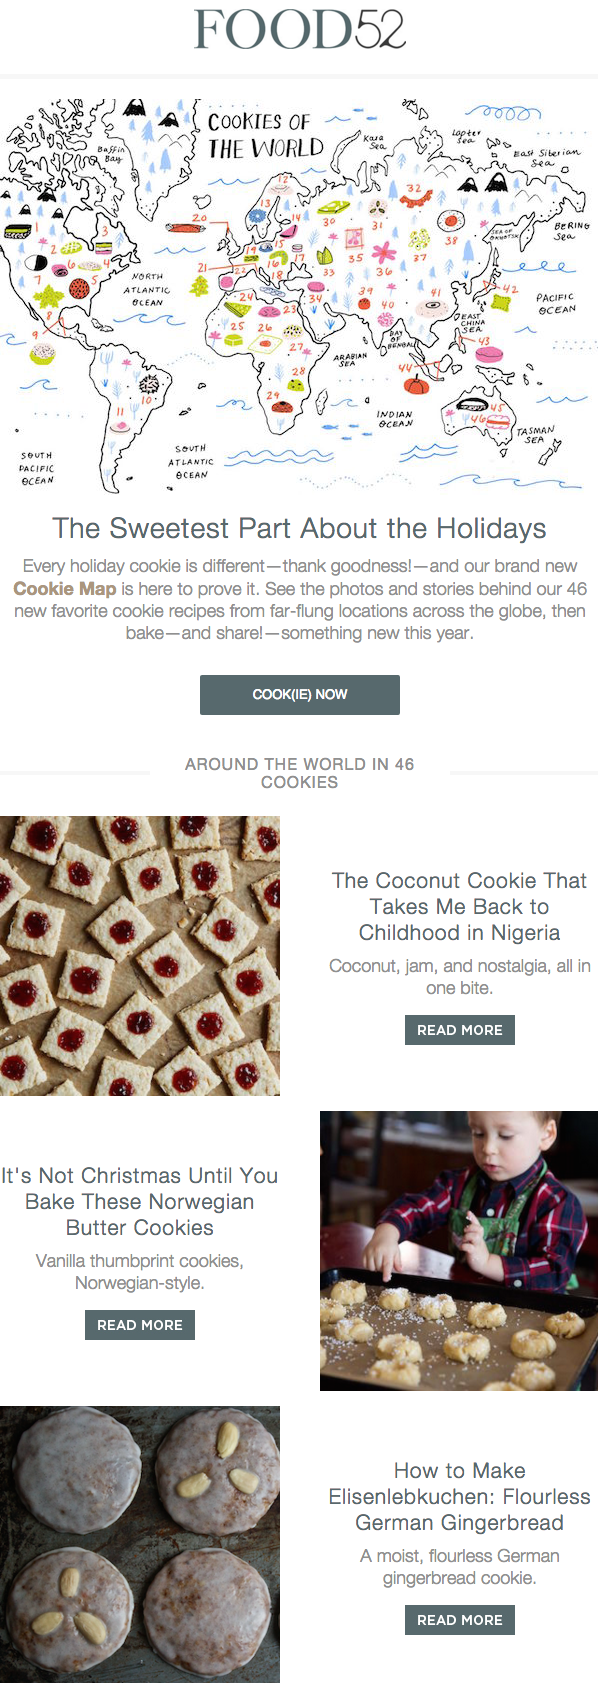 food52-holiday-campaign-1.png